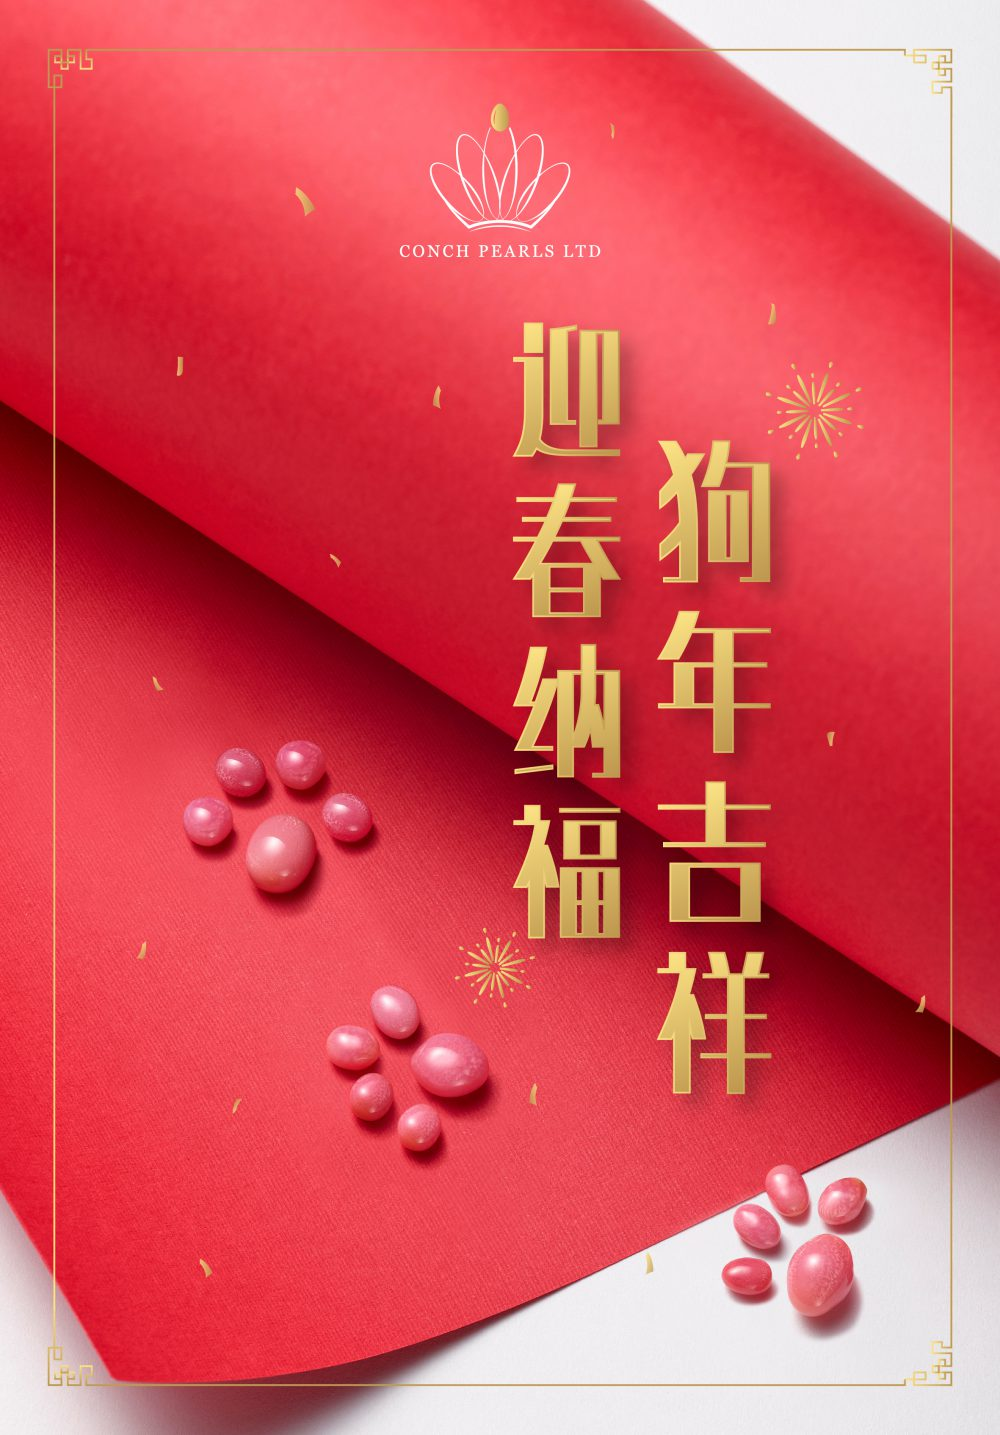 Conch Pearls ltd Chinese new year